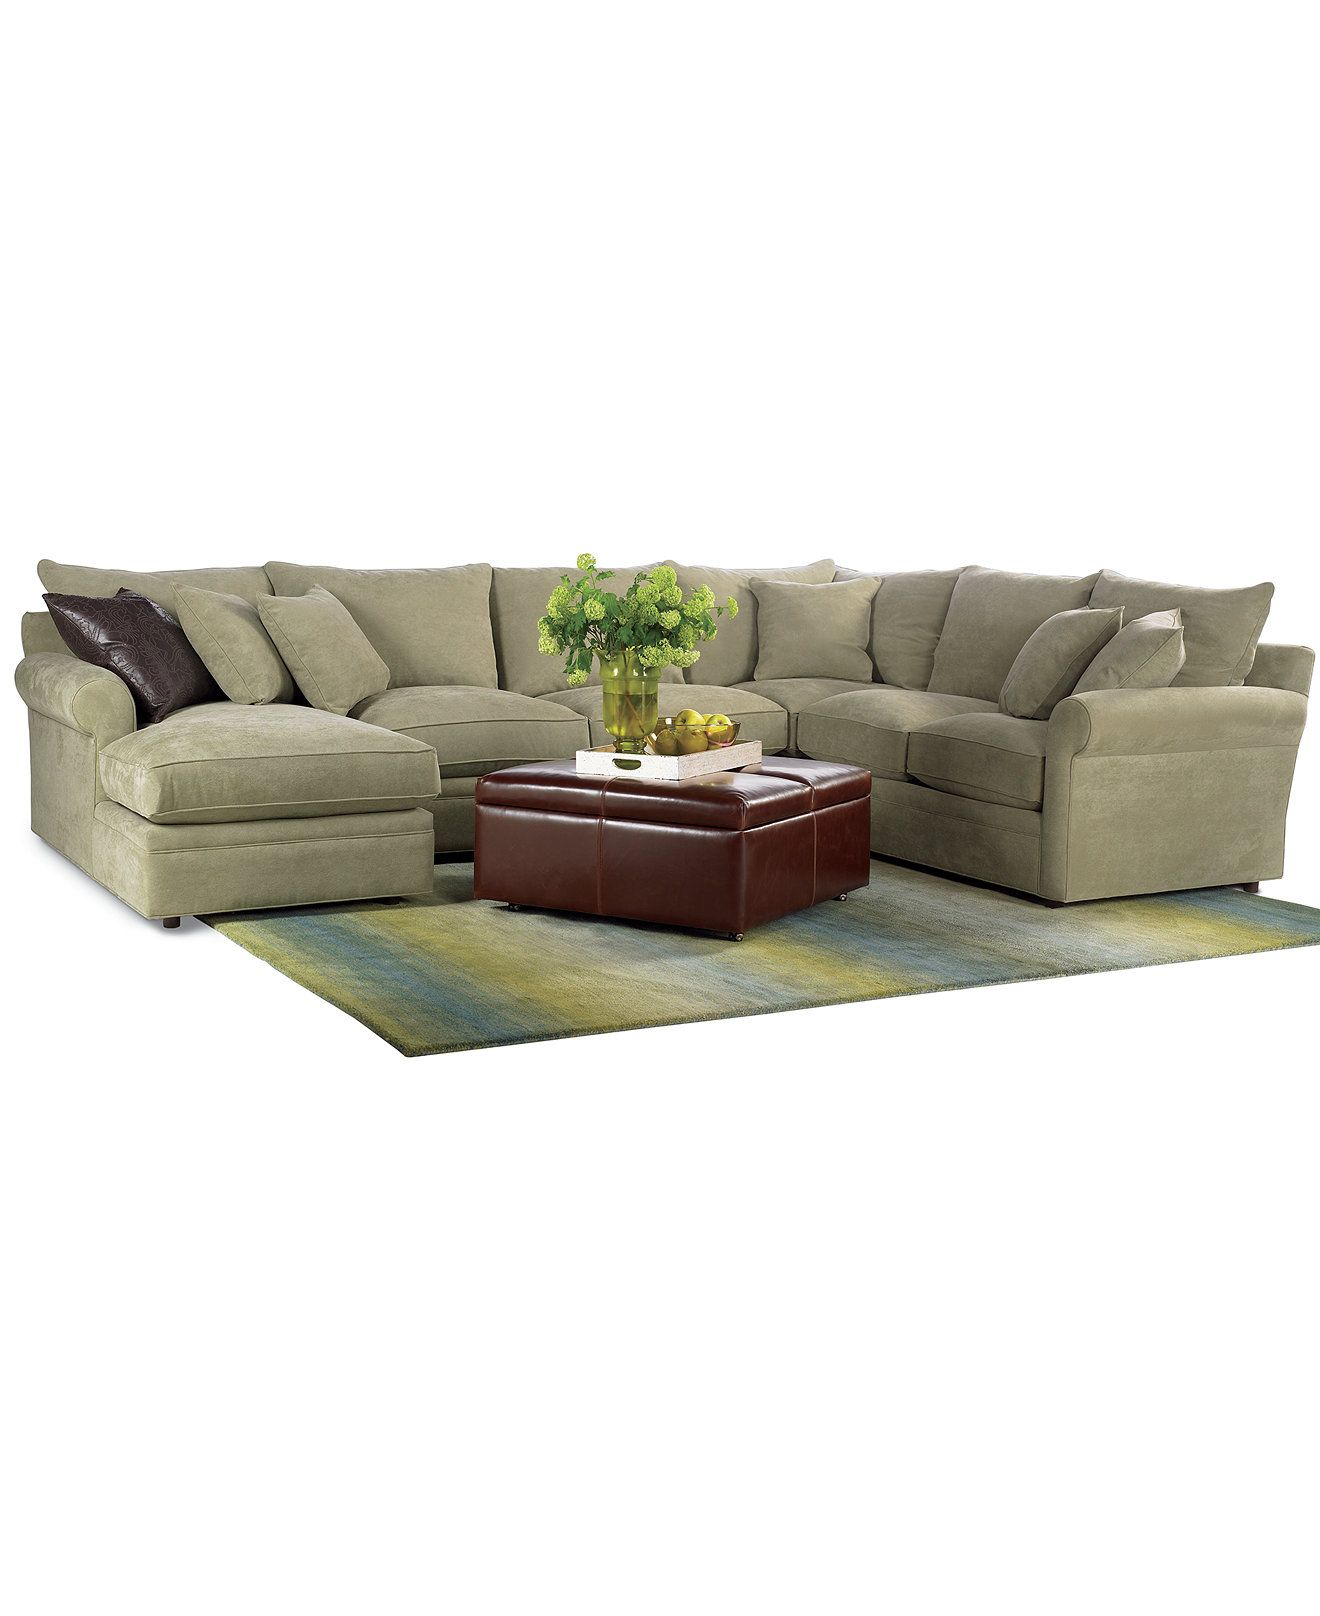 Doss Fabric Microfiber Sectional Sofa 4 Piece Left Arm Facing